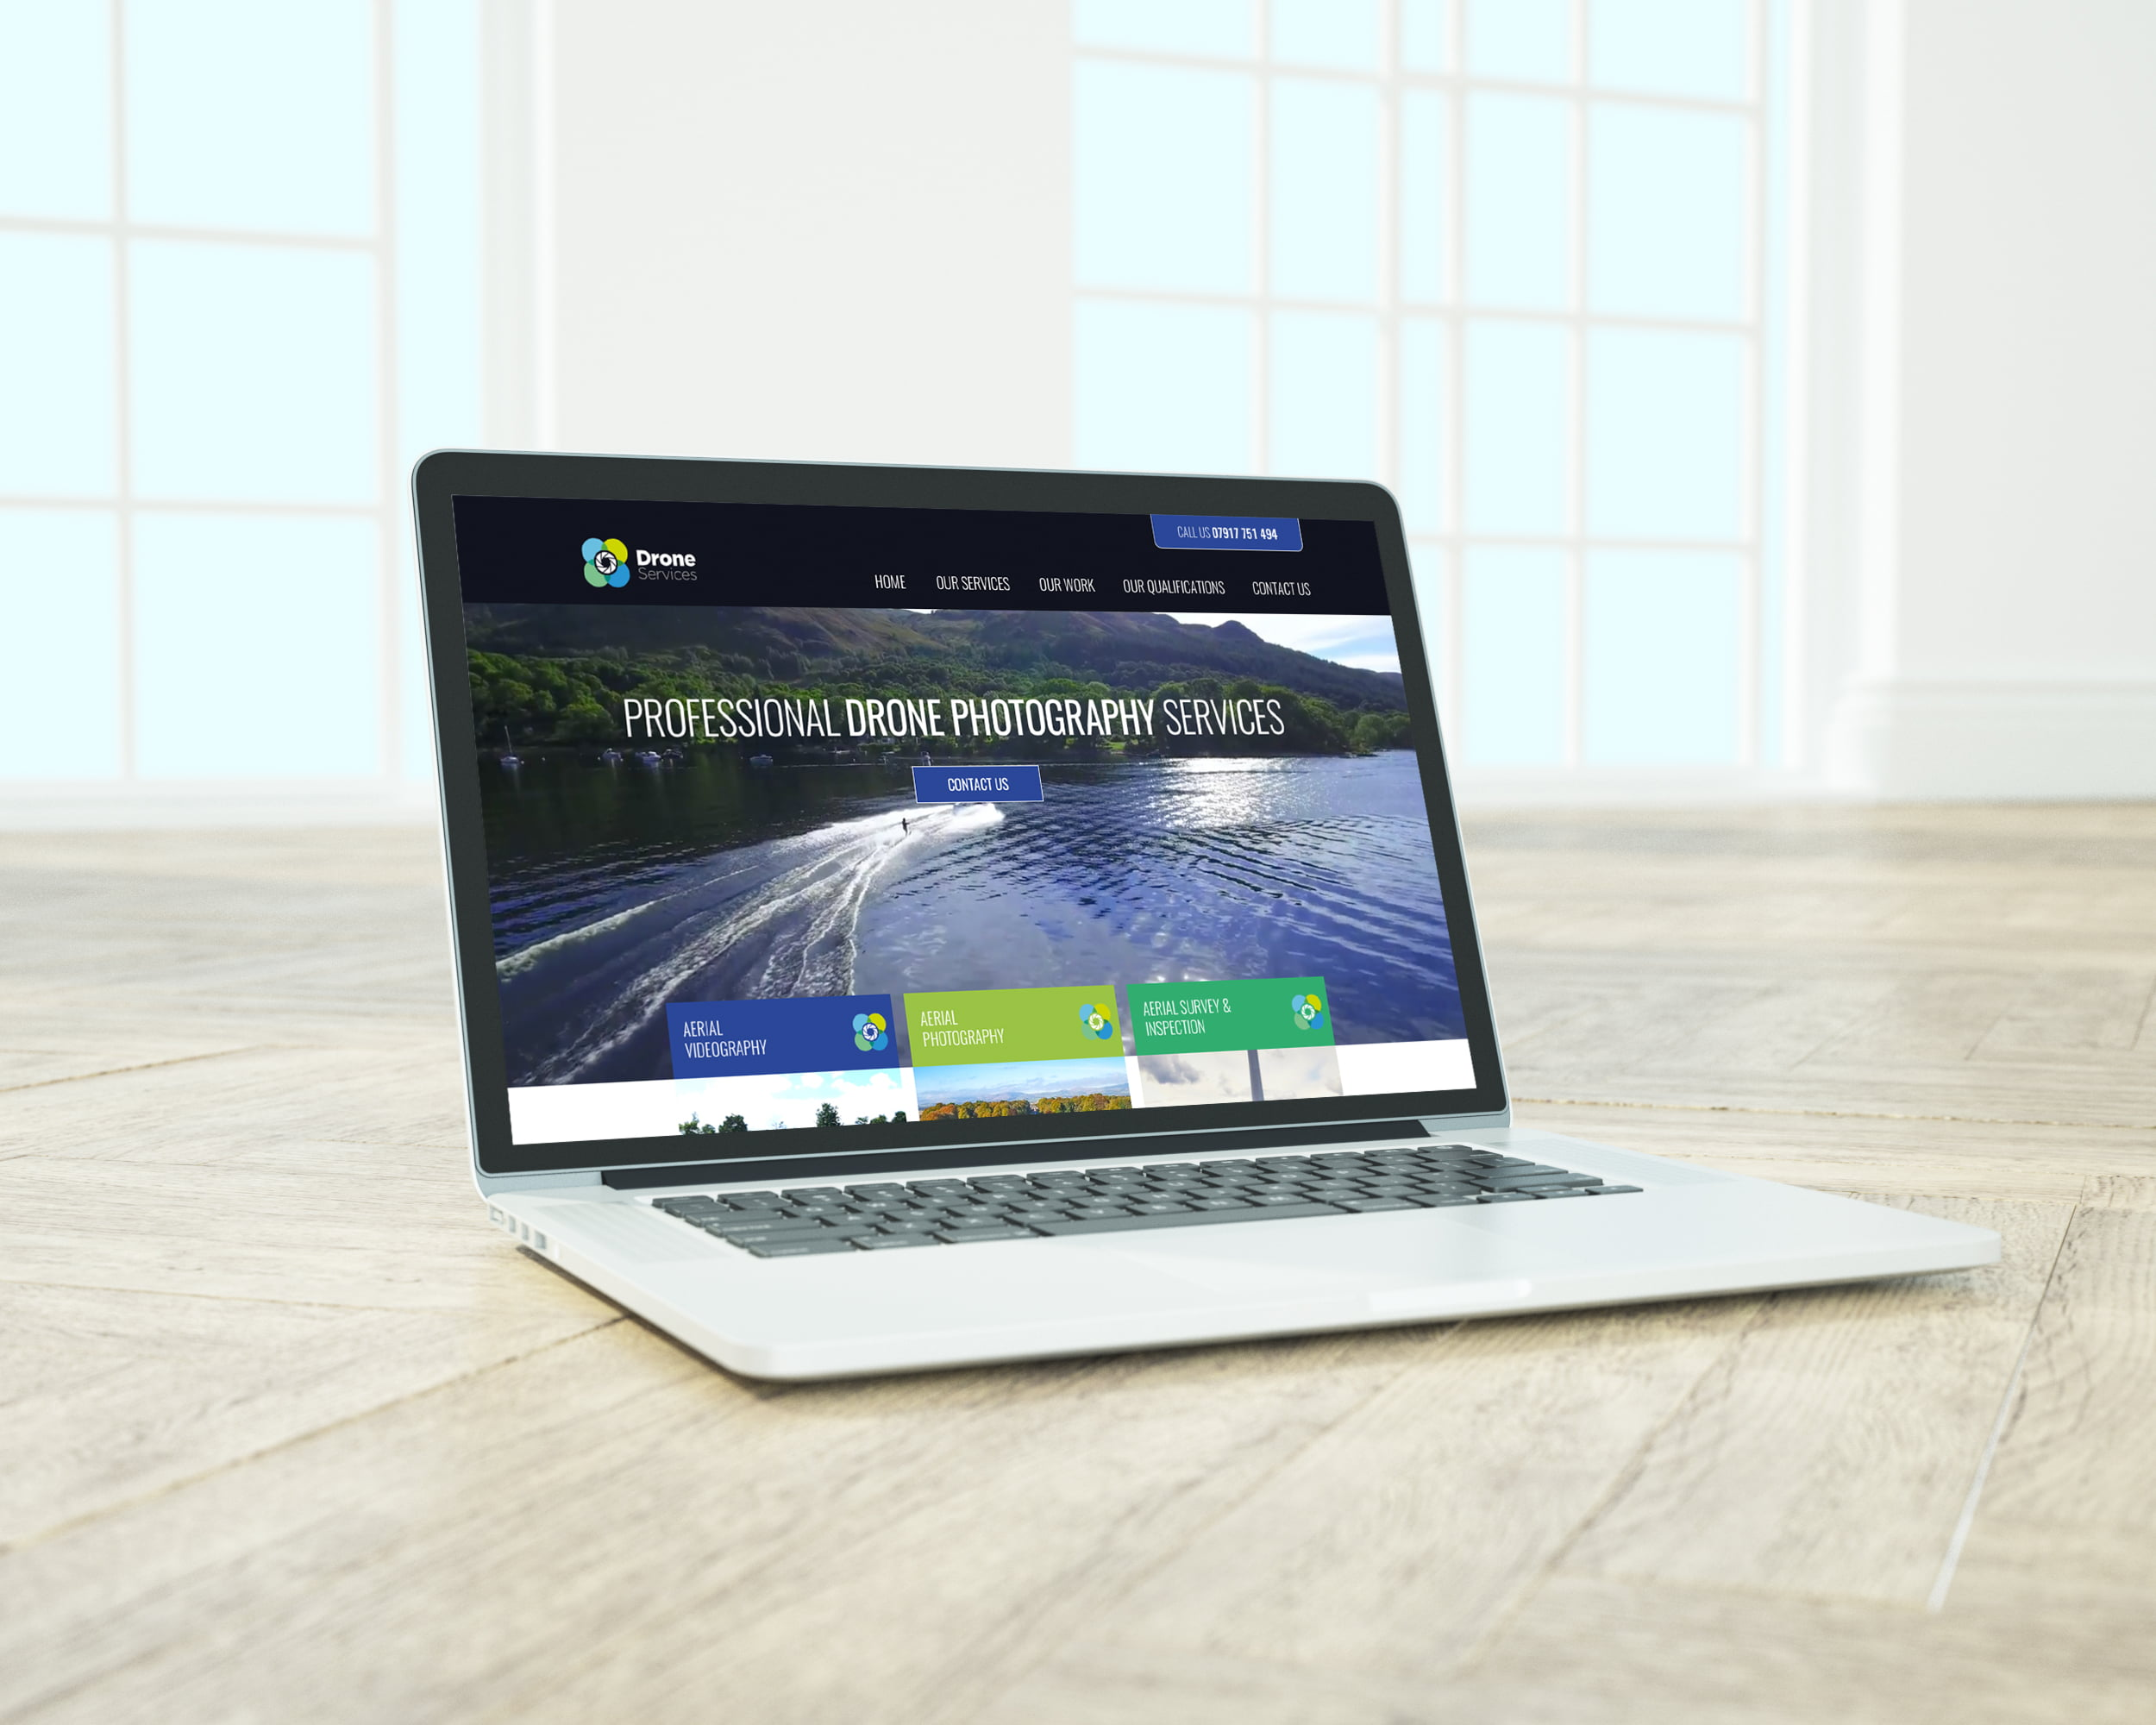 Drone Services website displayed on laptop